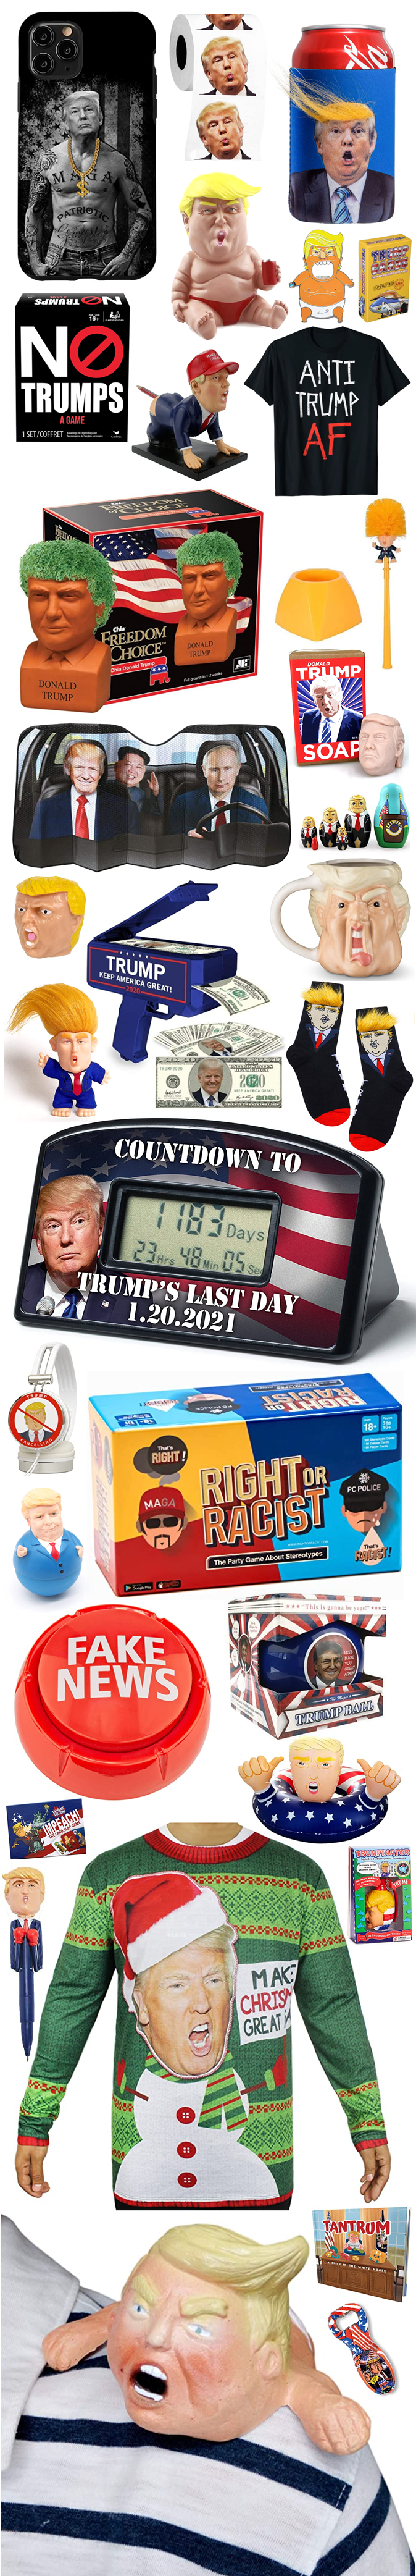 MORE HILARIOUS TRUMP GAG GIFTS 2020